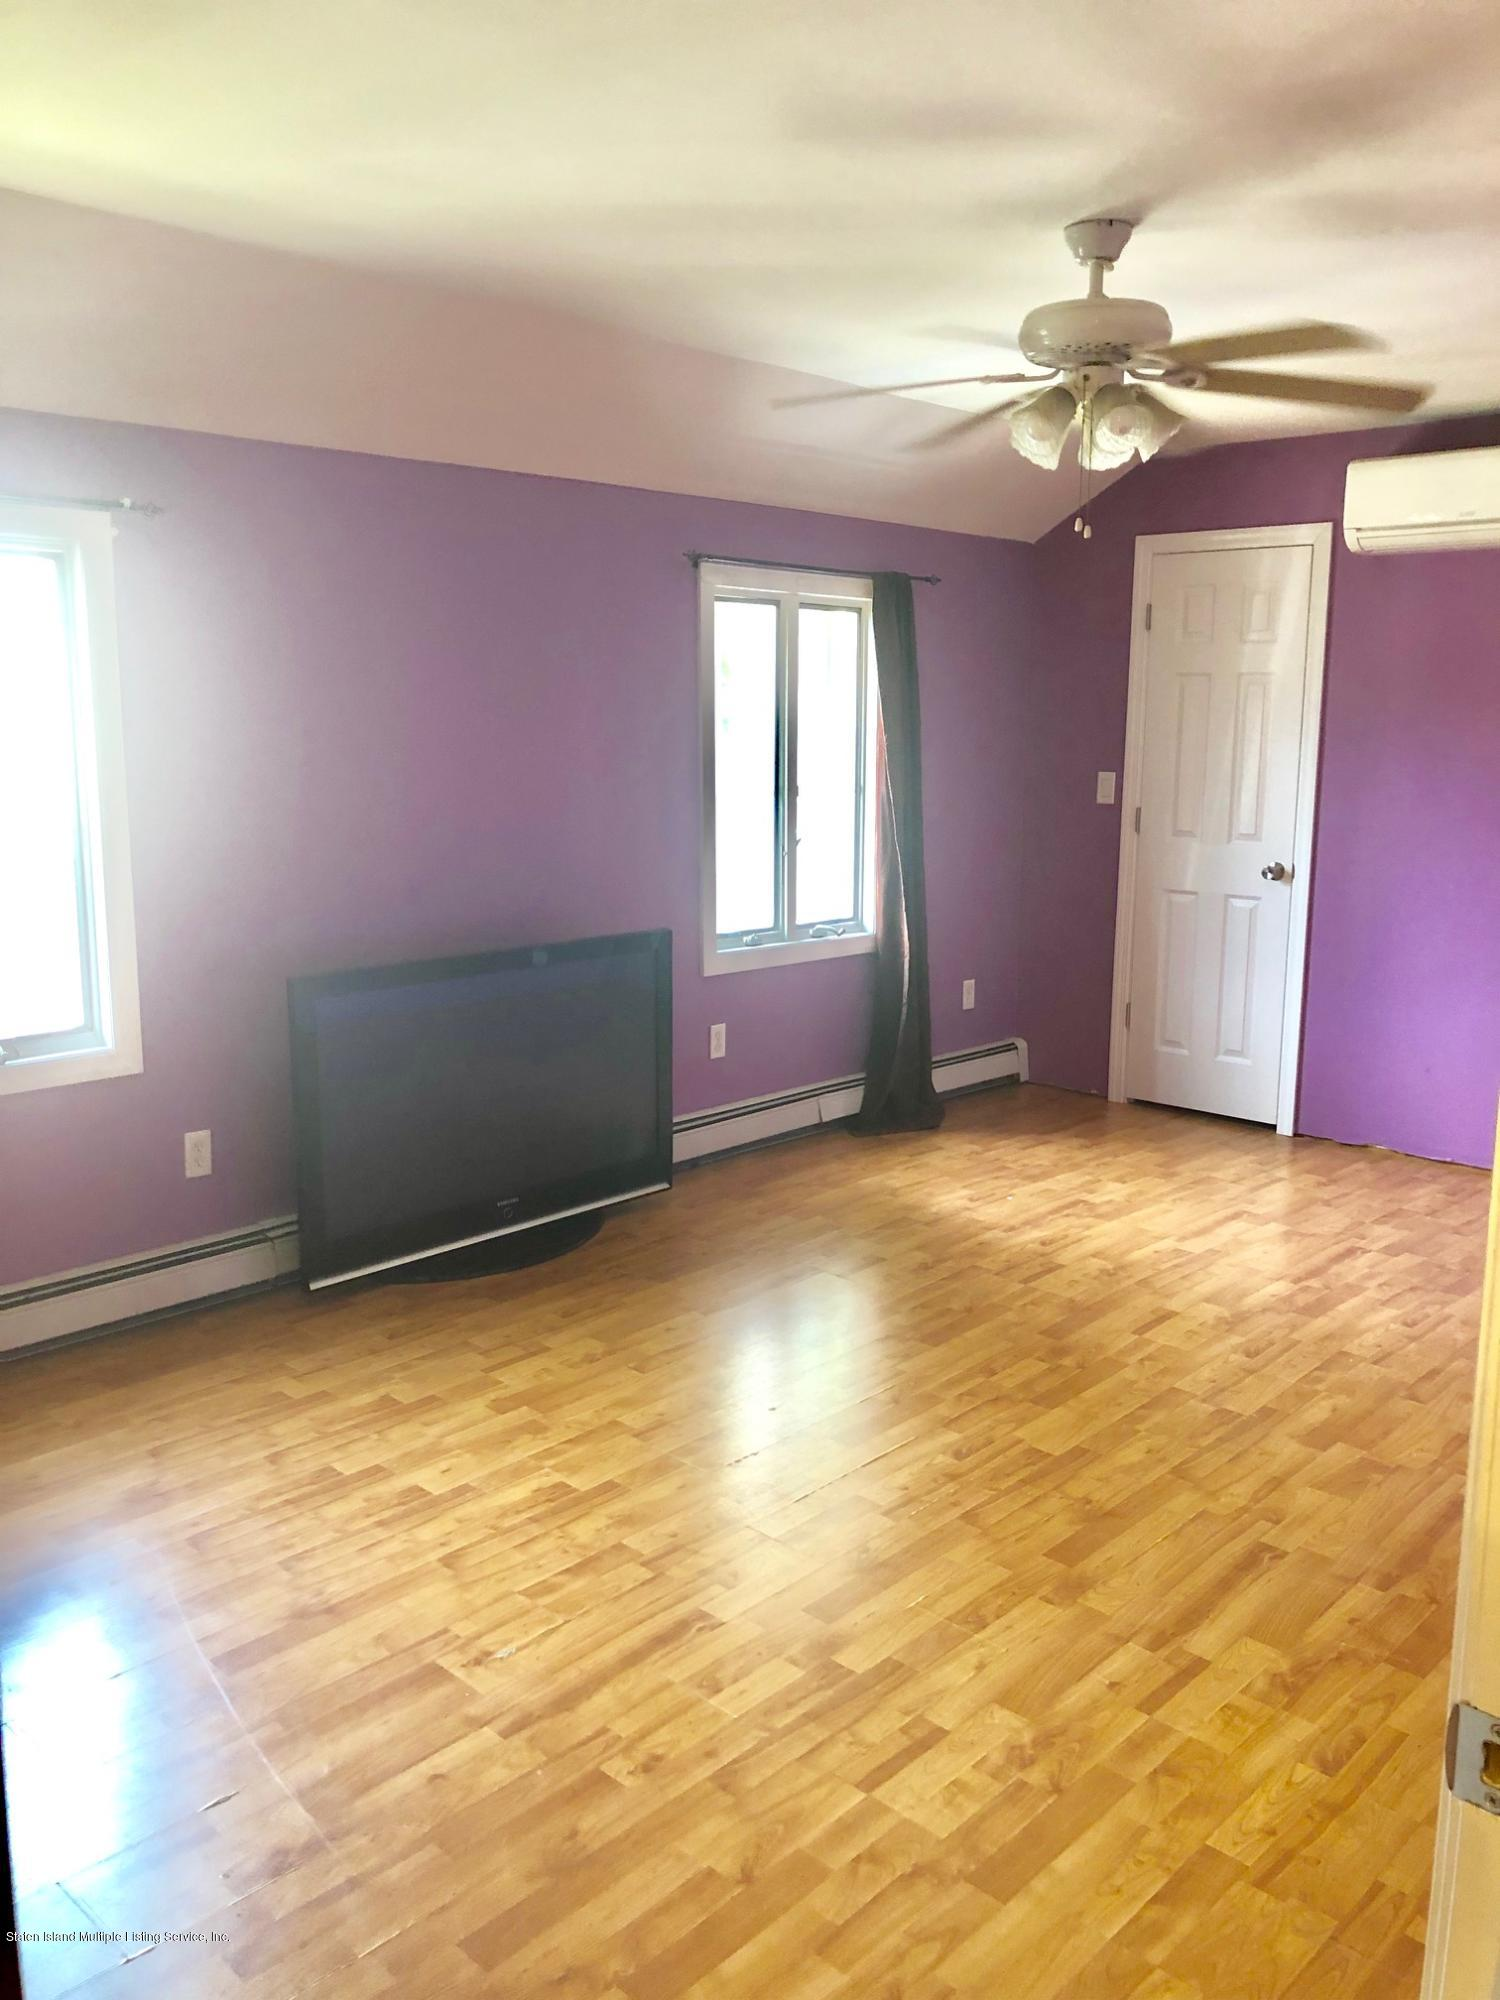 Single Family - Detached 143 Burbank Avenue  Staten Island, NY 10306, MLS-1129725-11